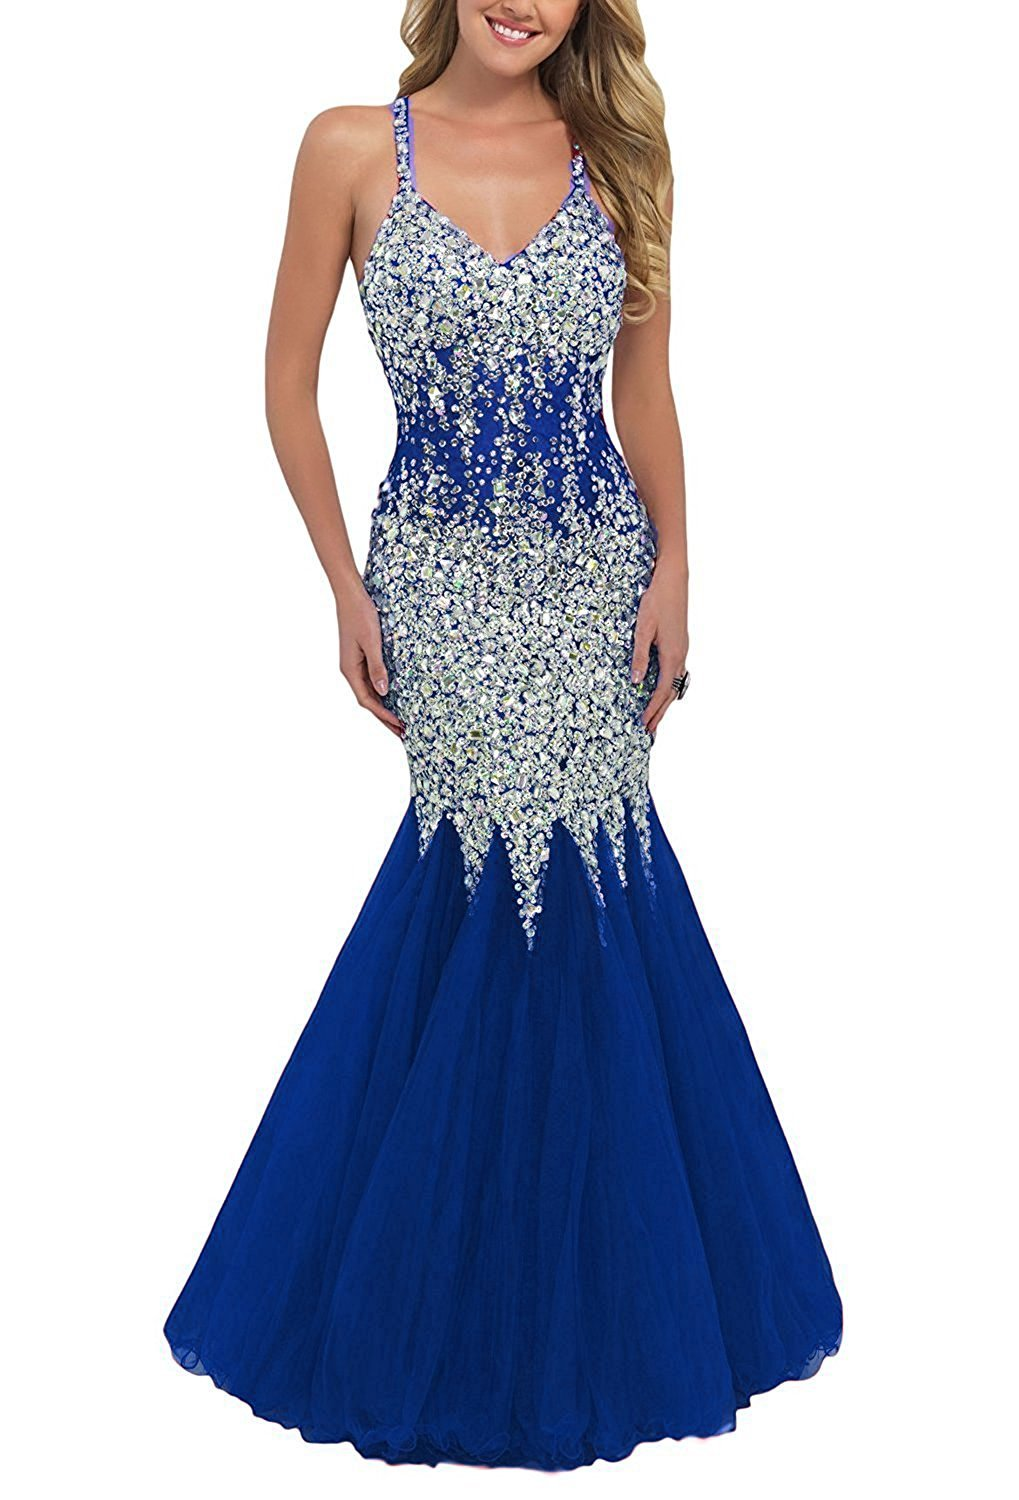 Primary image for Women's V-neck Beaded Mermaid Prom Dresses 2018 Cross Back Mermaid Evening Gowns